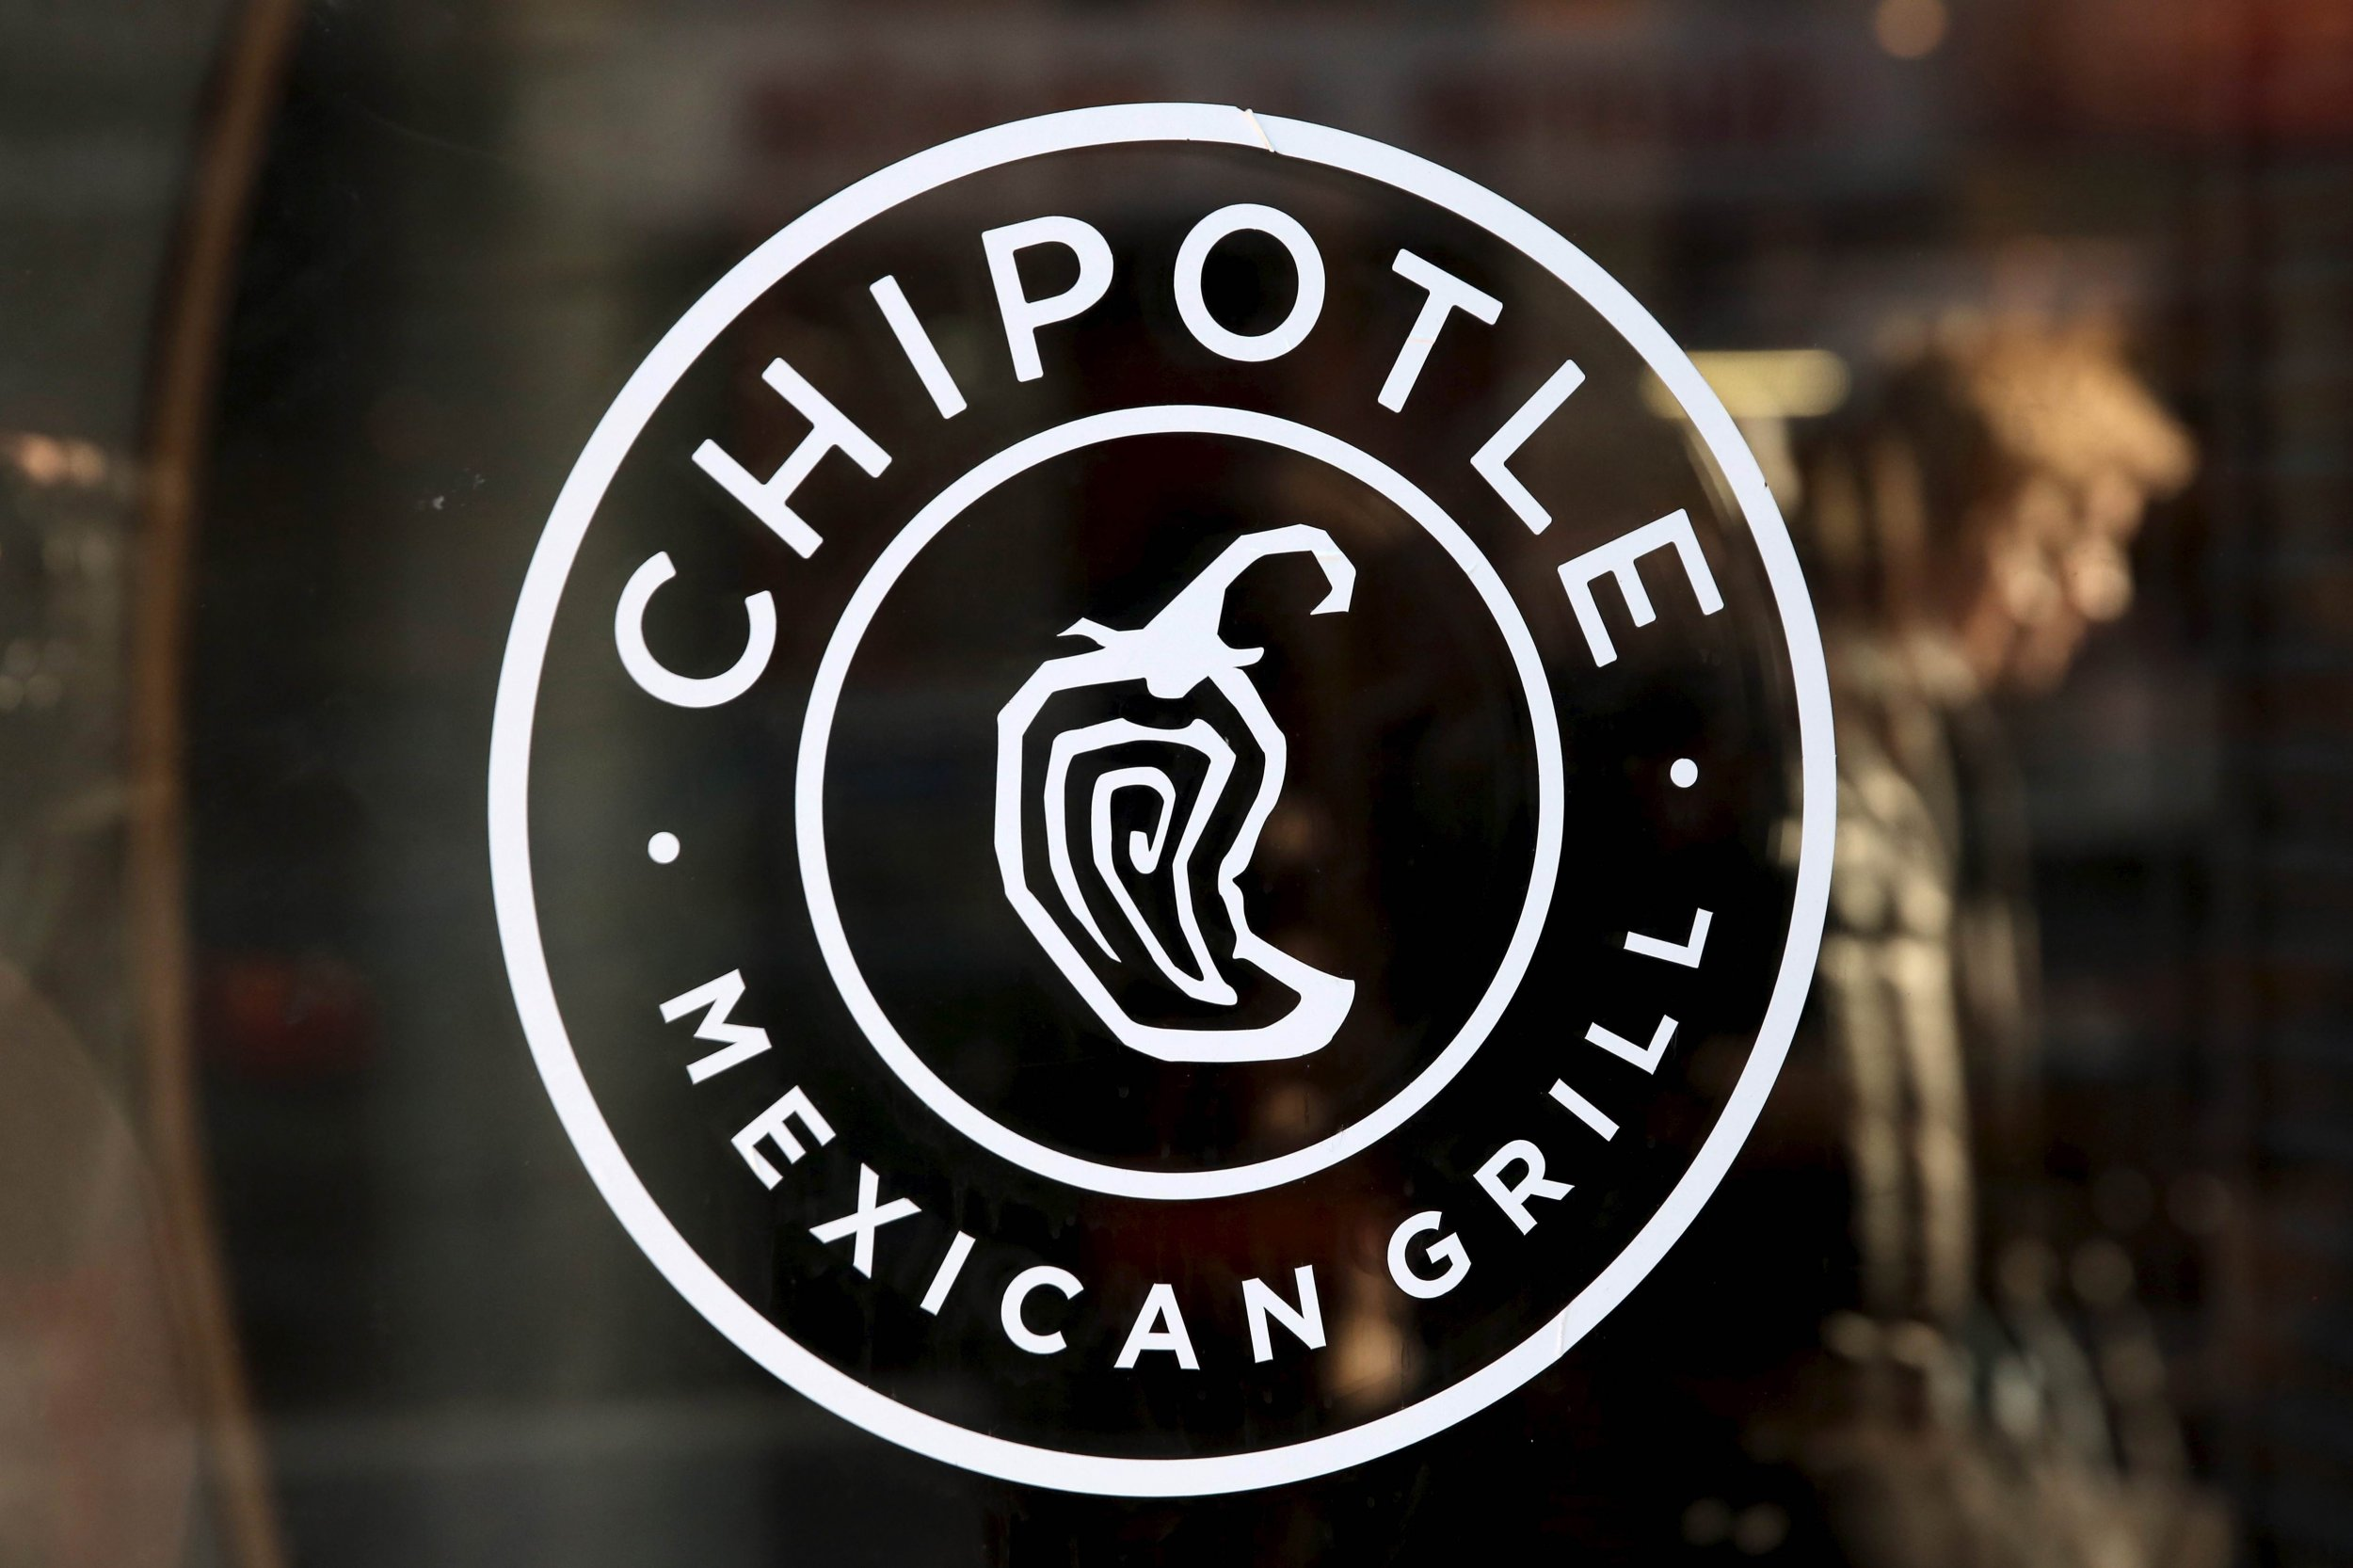 Chipotle Mexican Grill e-coli